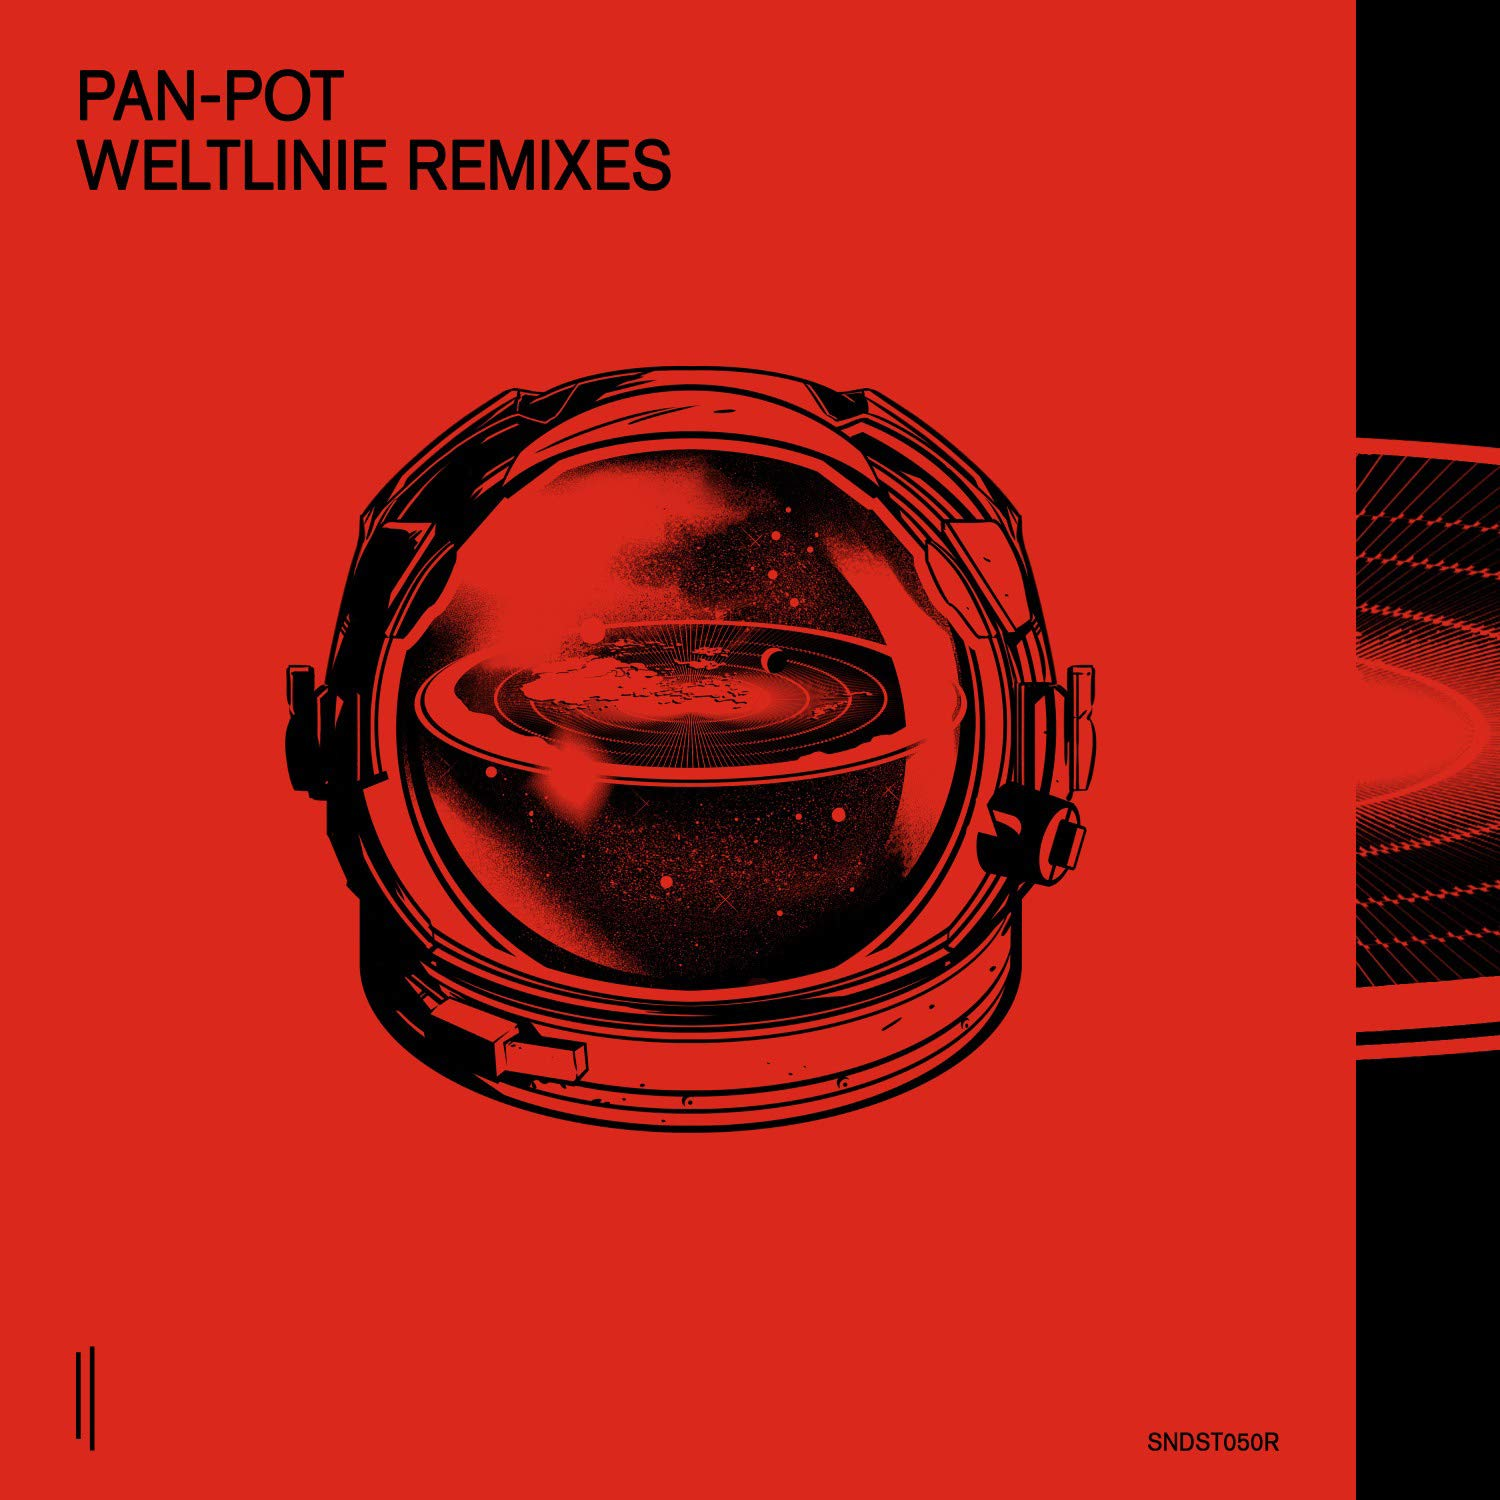 Vinilo : Pan Pot - Weltlinie Remixes (Extended Play, 2 Pack)